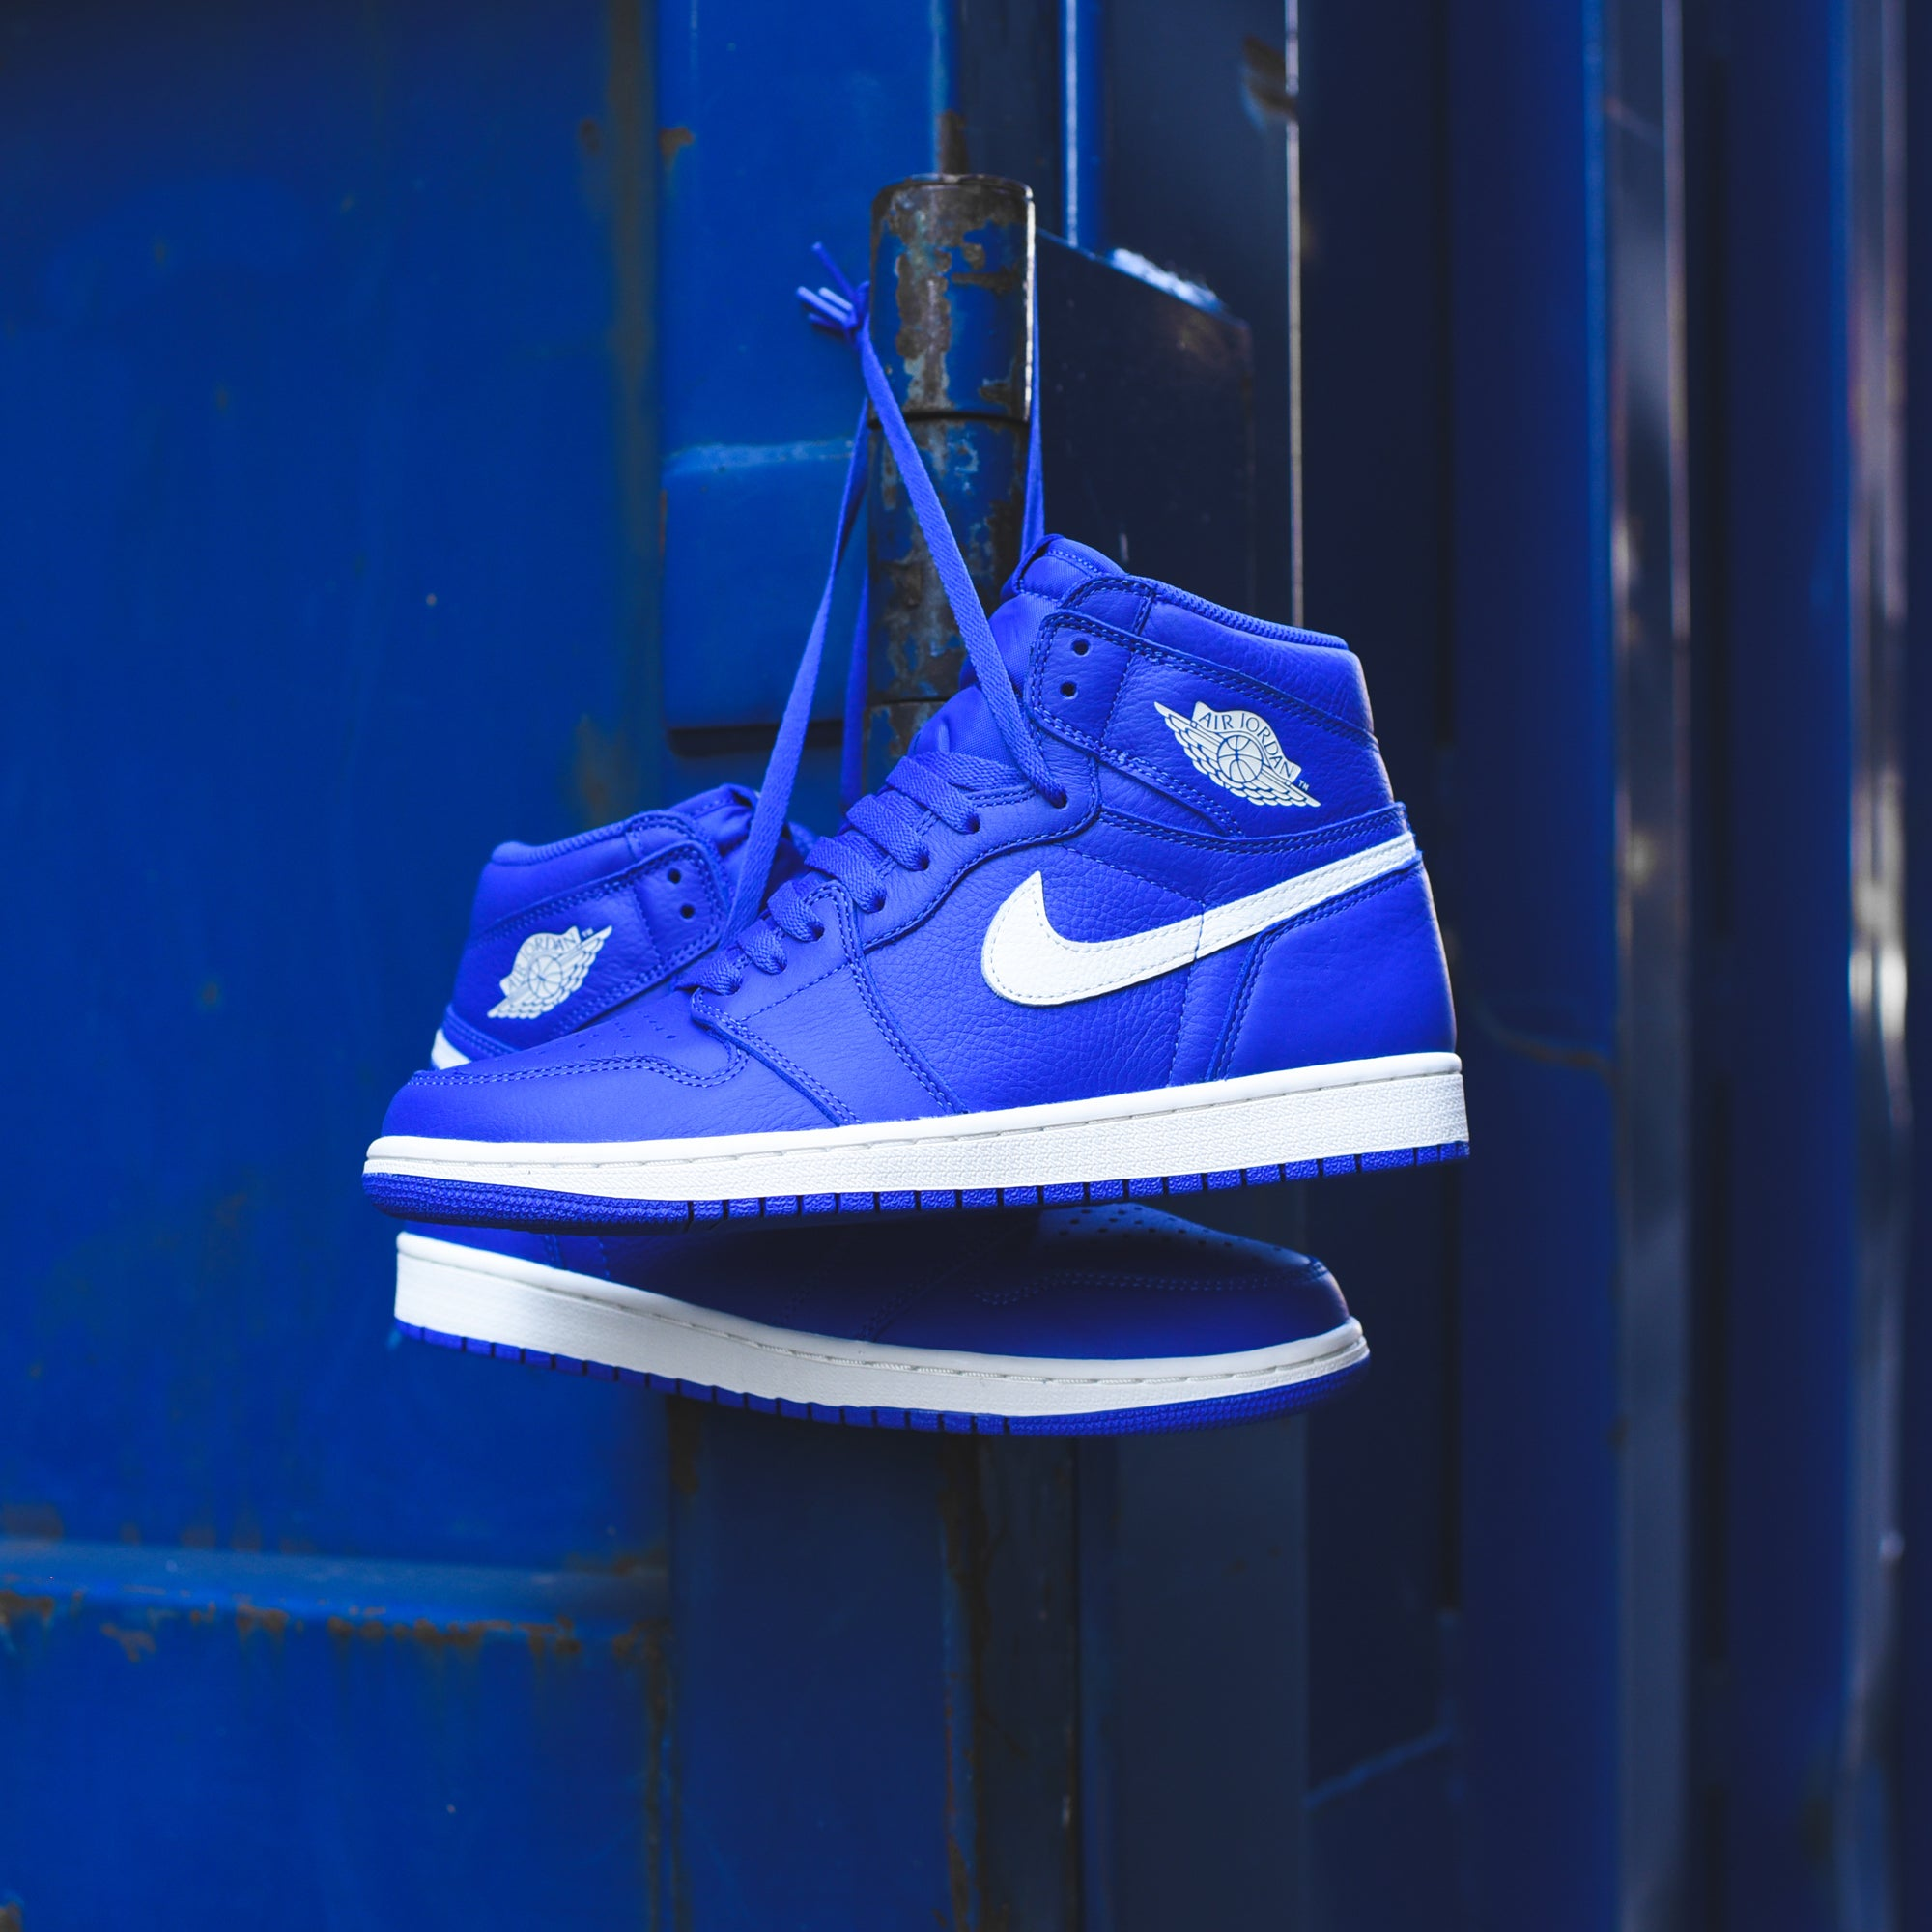 fc70bdcfbfe4a4 Nike Air Jordan 1 - Hyper Royal   Sail. July 07